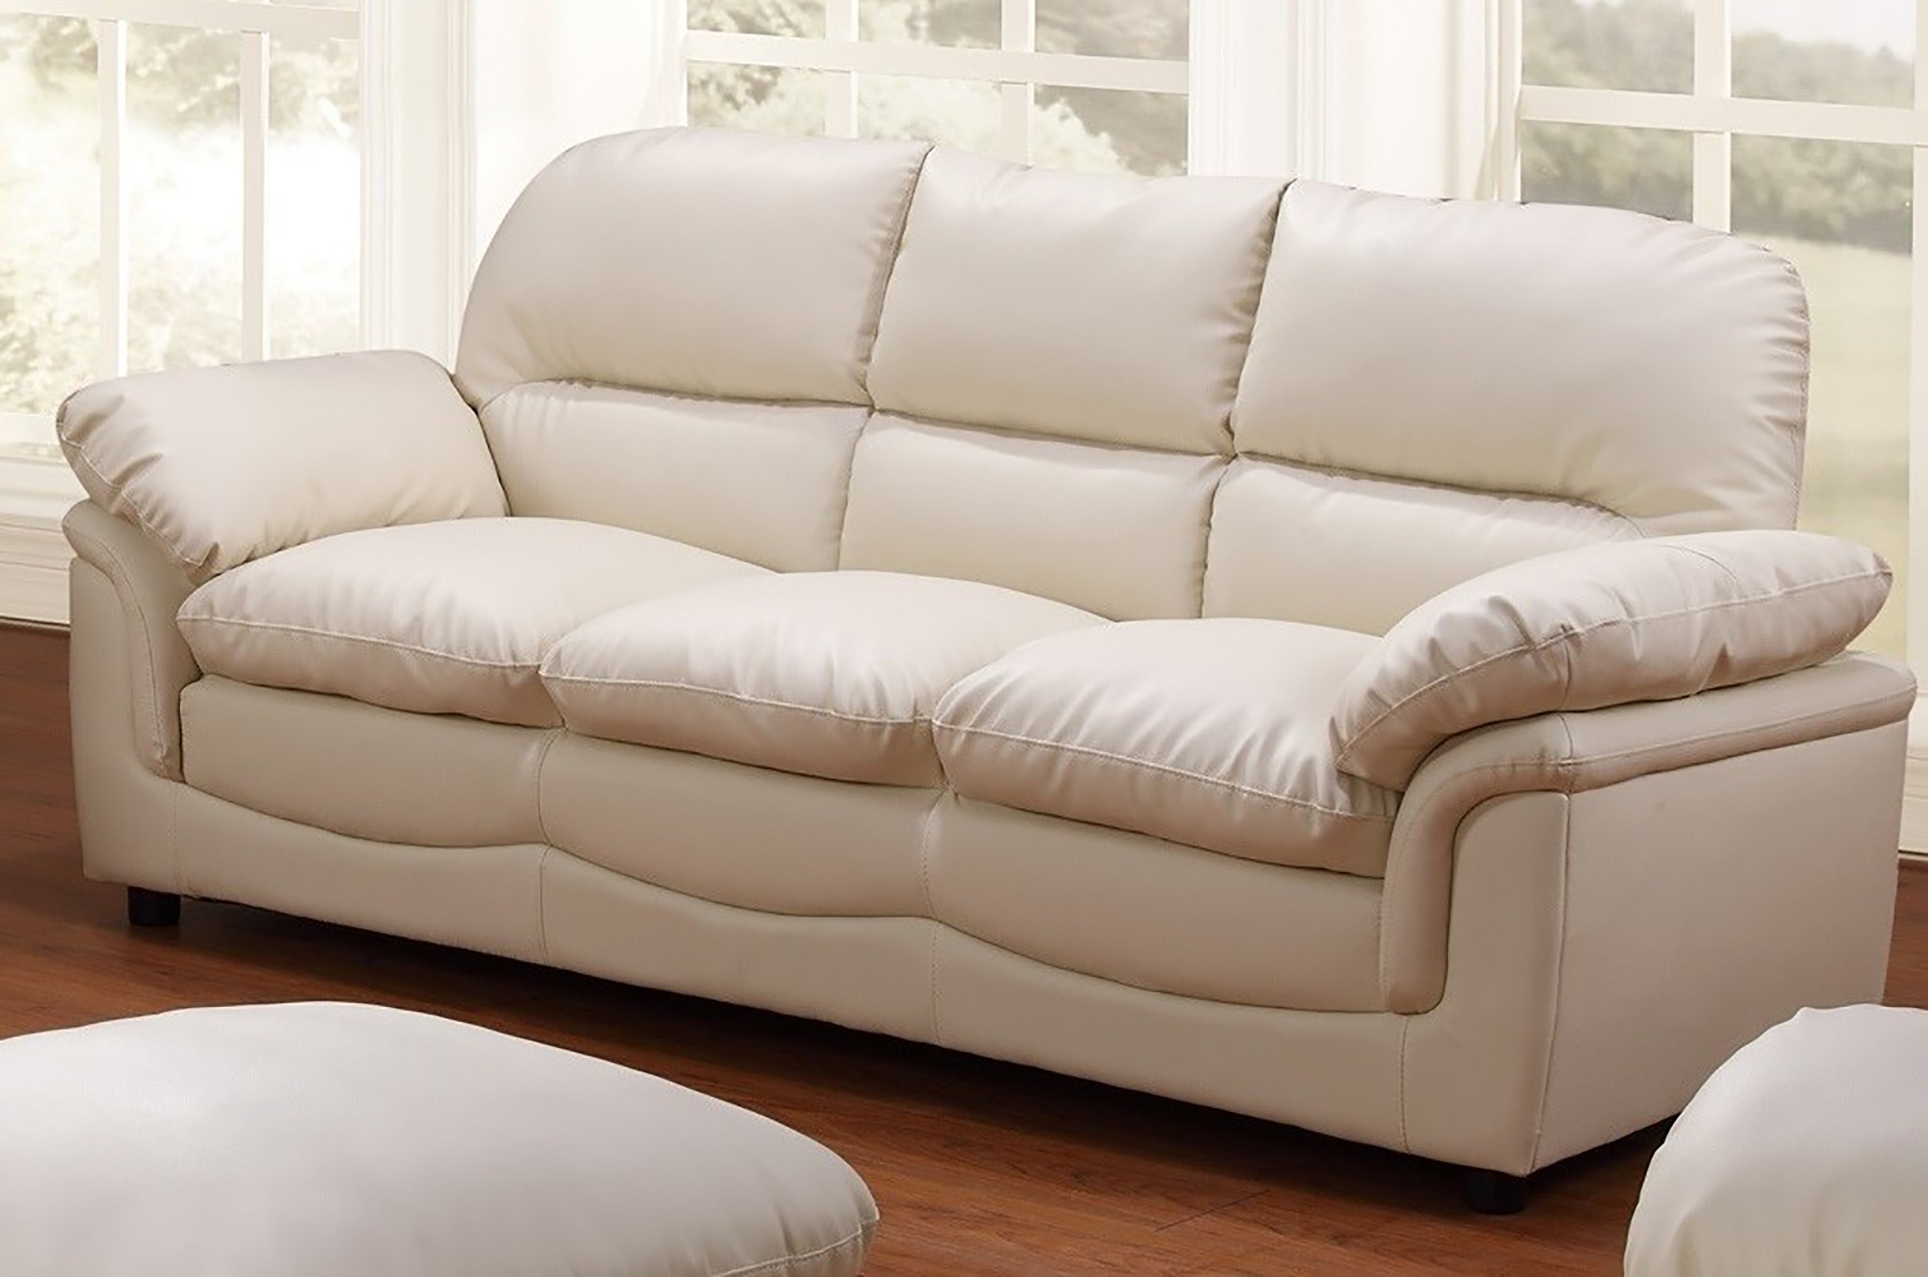 New modern verona 3 seater bonded leather living room sofa - Living room with cream sofa ...